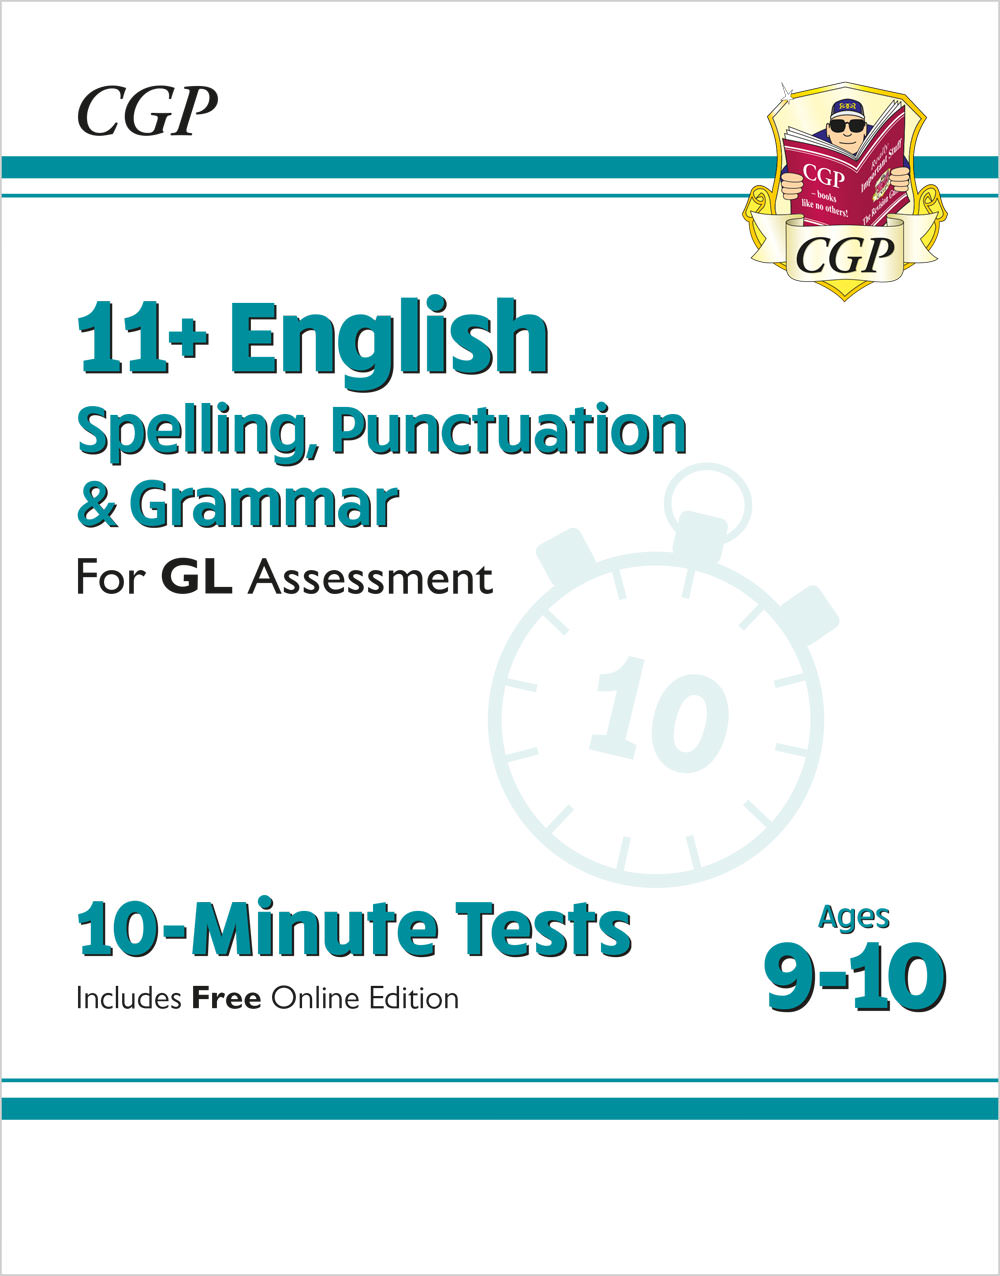 E5GXPE1 - 11+ GL 10-Minute Tests: English Spelling, Punctuation & Grammar - Ages 9-10 (with Onl Ed)